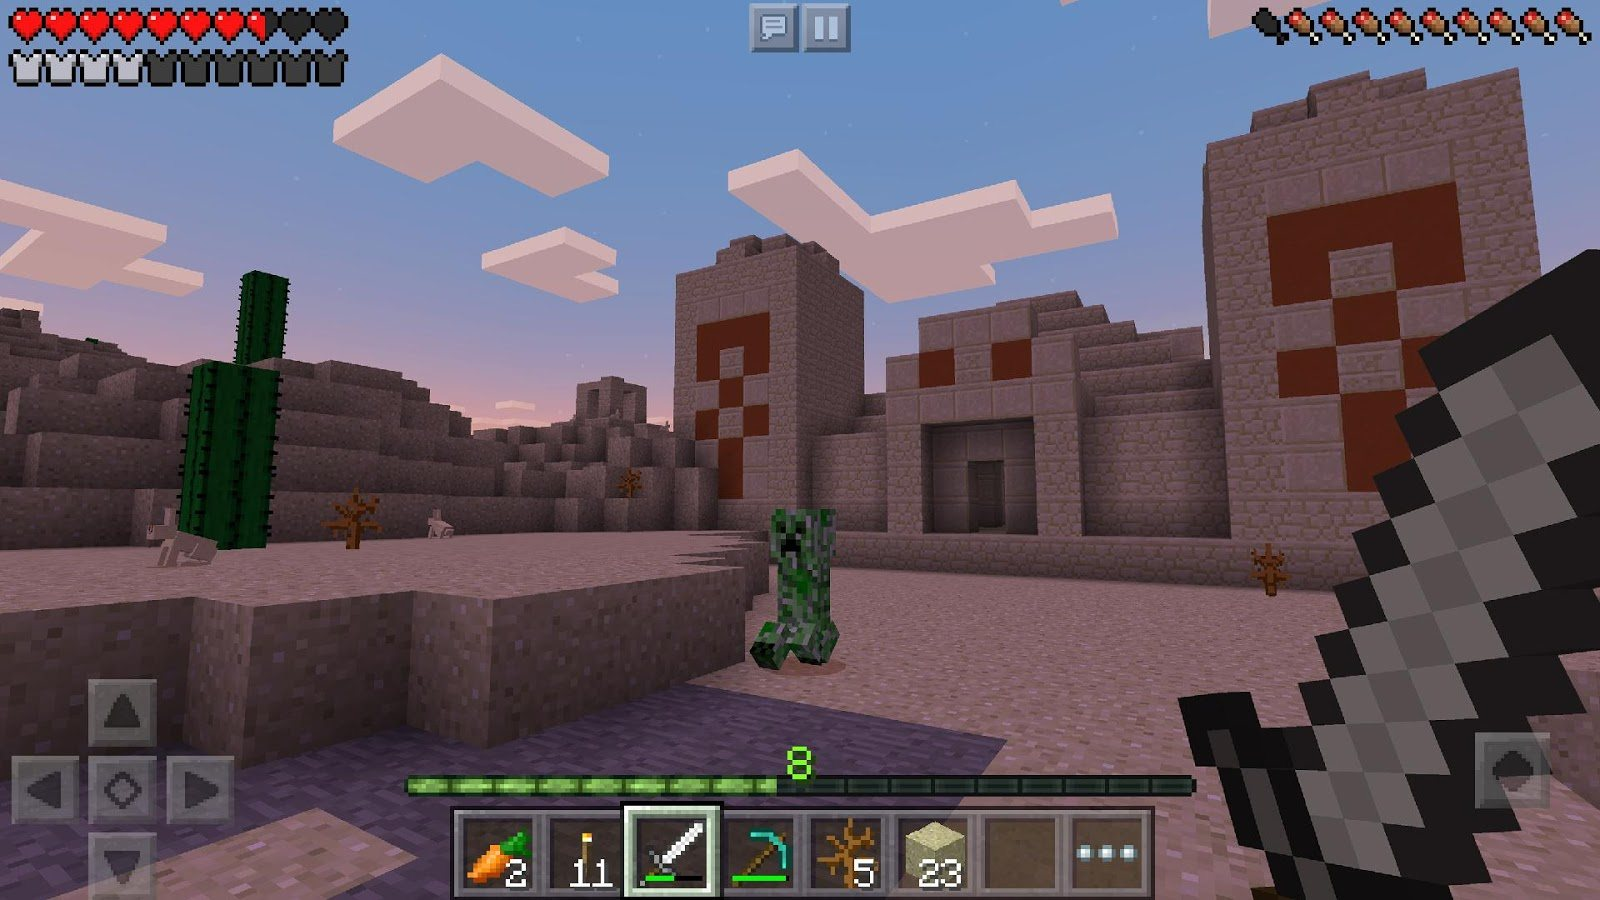 Best Multiplayer Games For Android Android Apps For Me - Minecraft spielen download chip